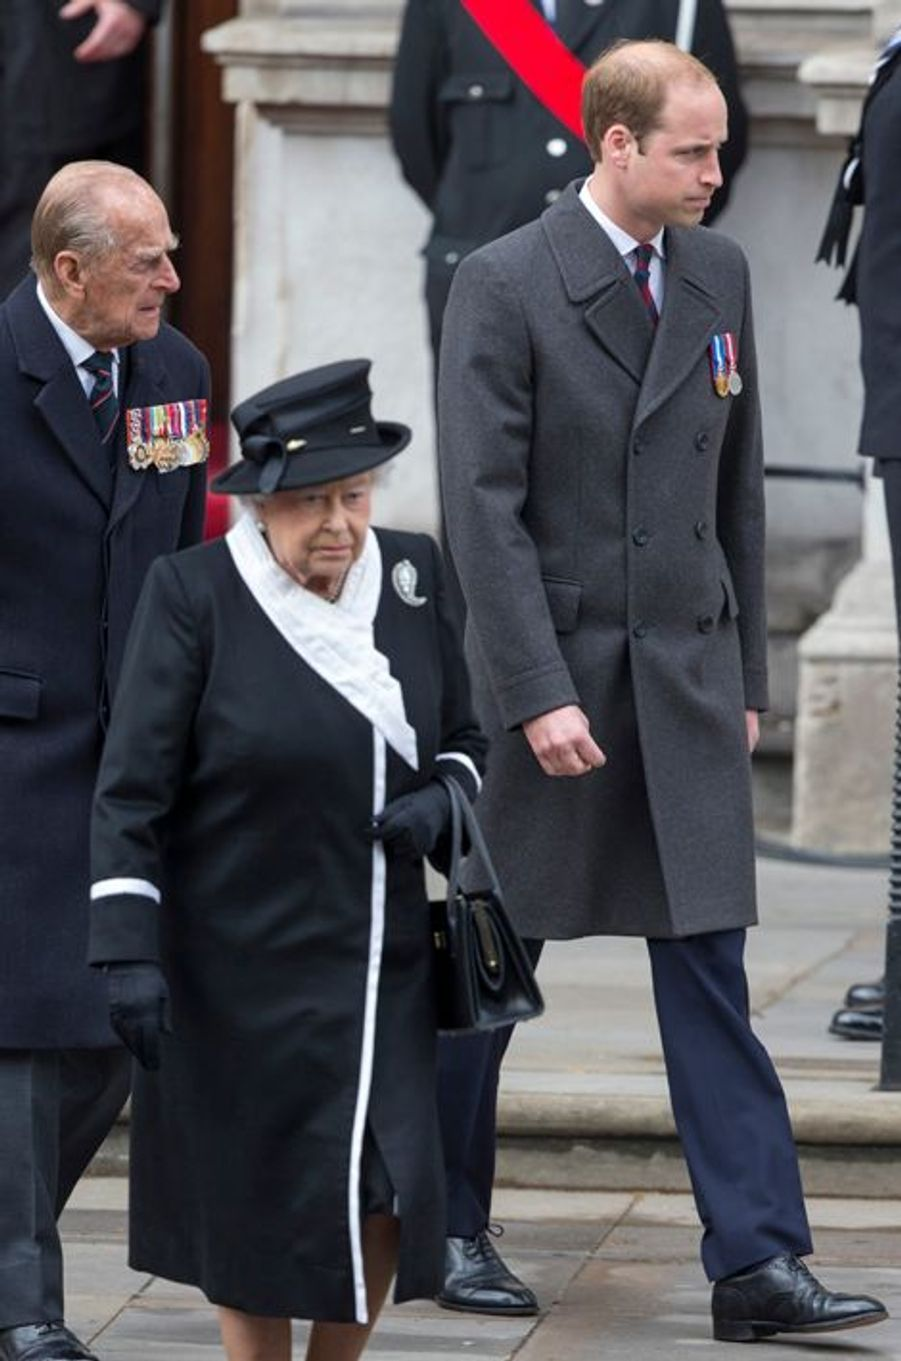 La reine Elizabeth II et les princes Philip et William au Cénotaphe à Londres, le 25 avril 2015